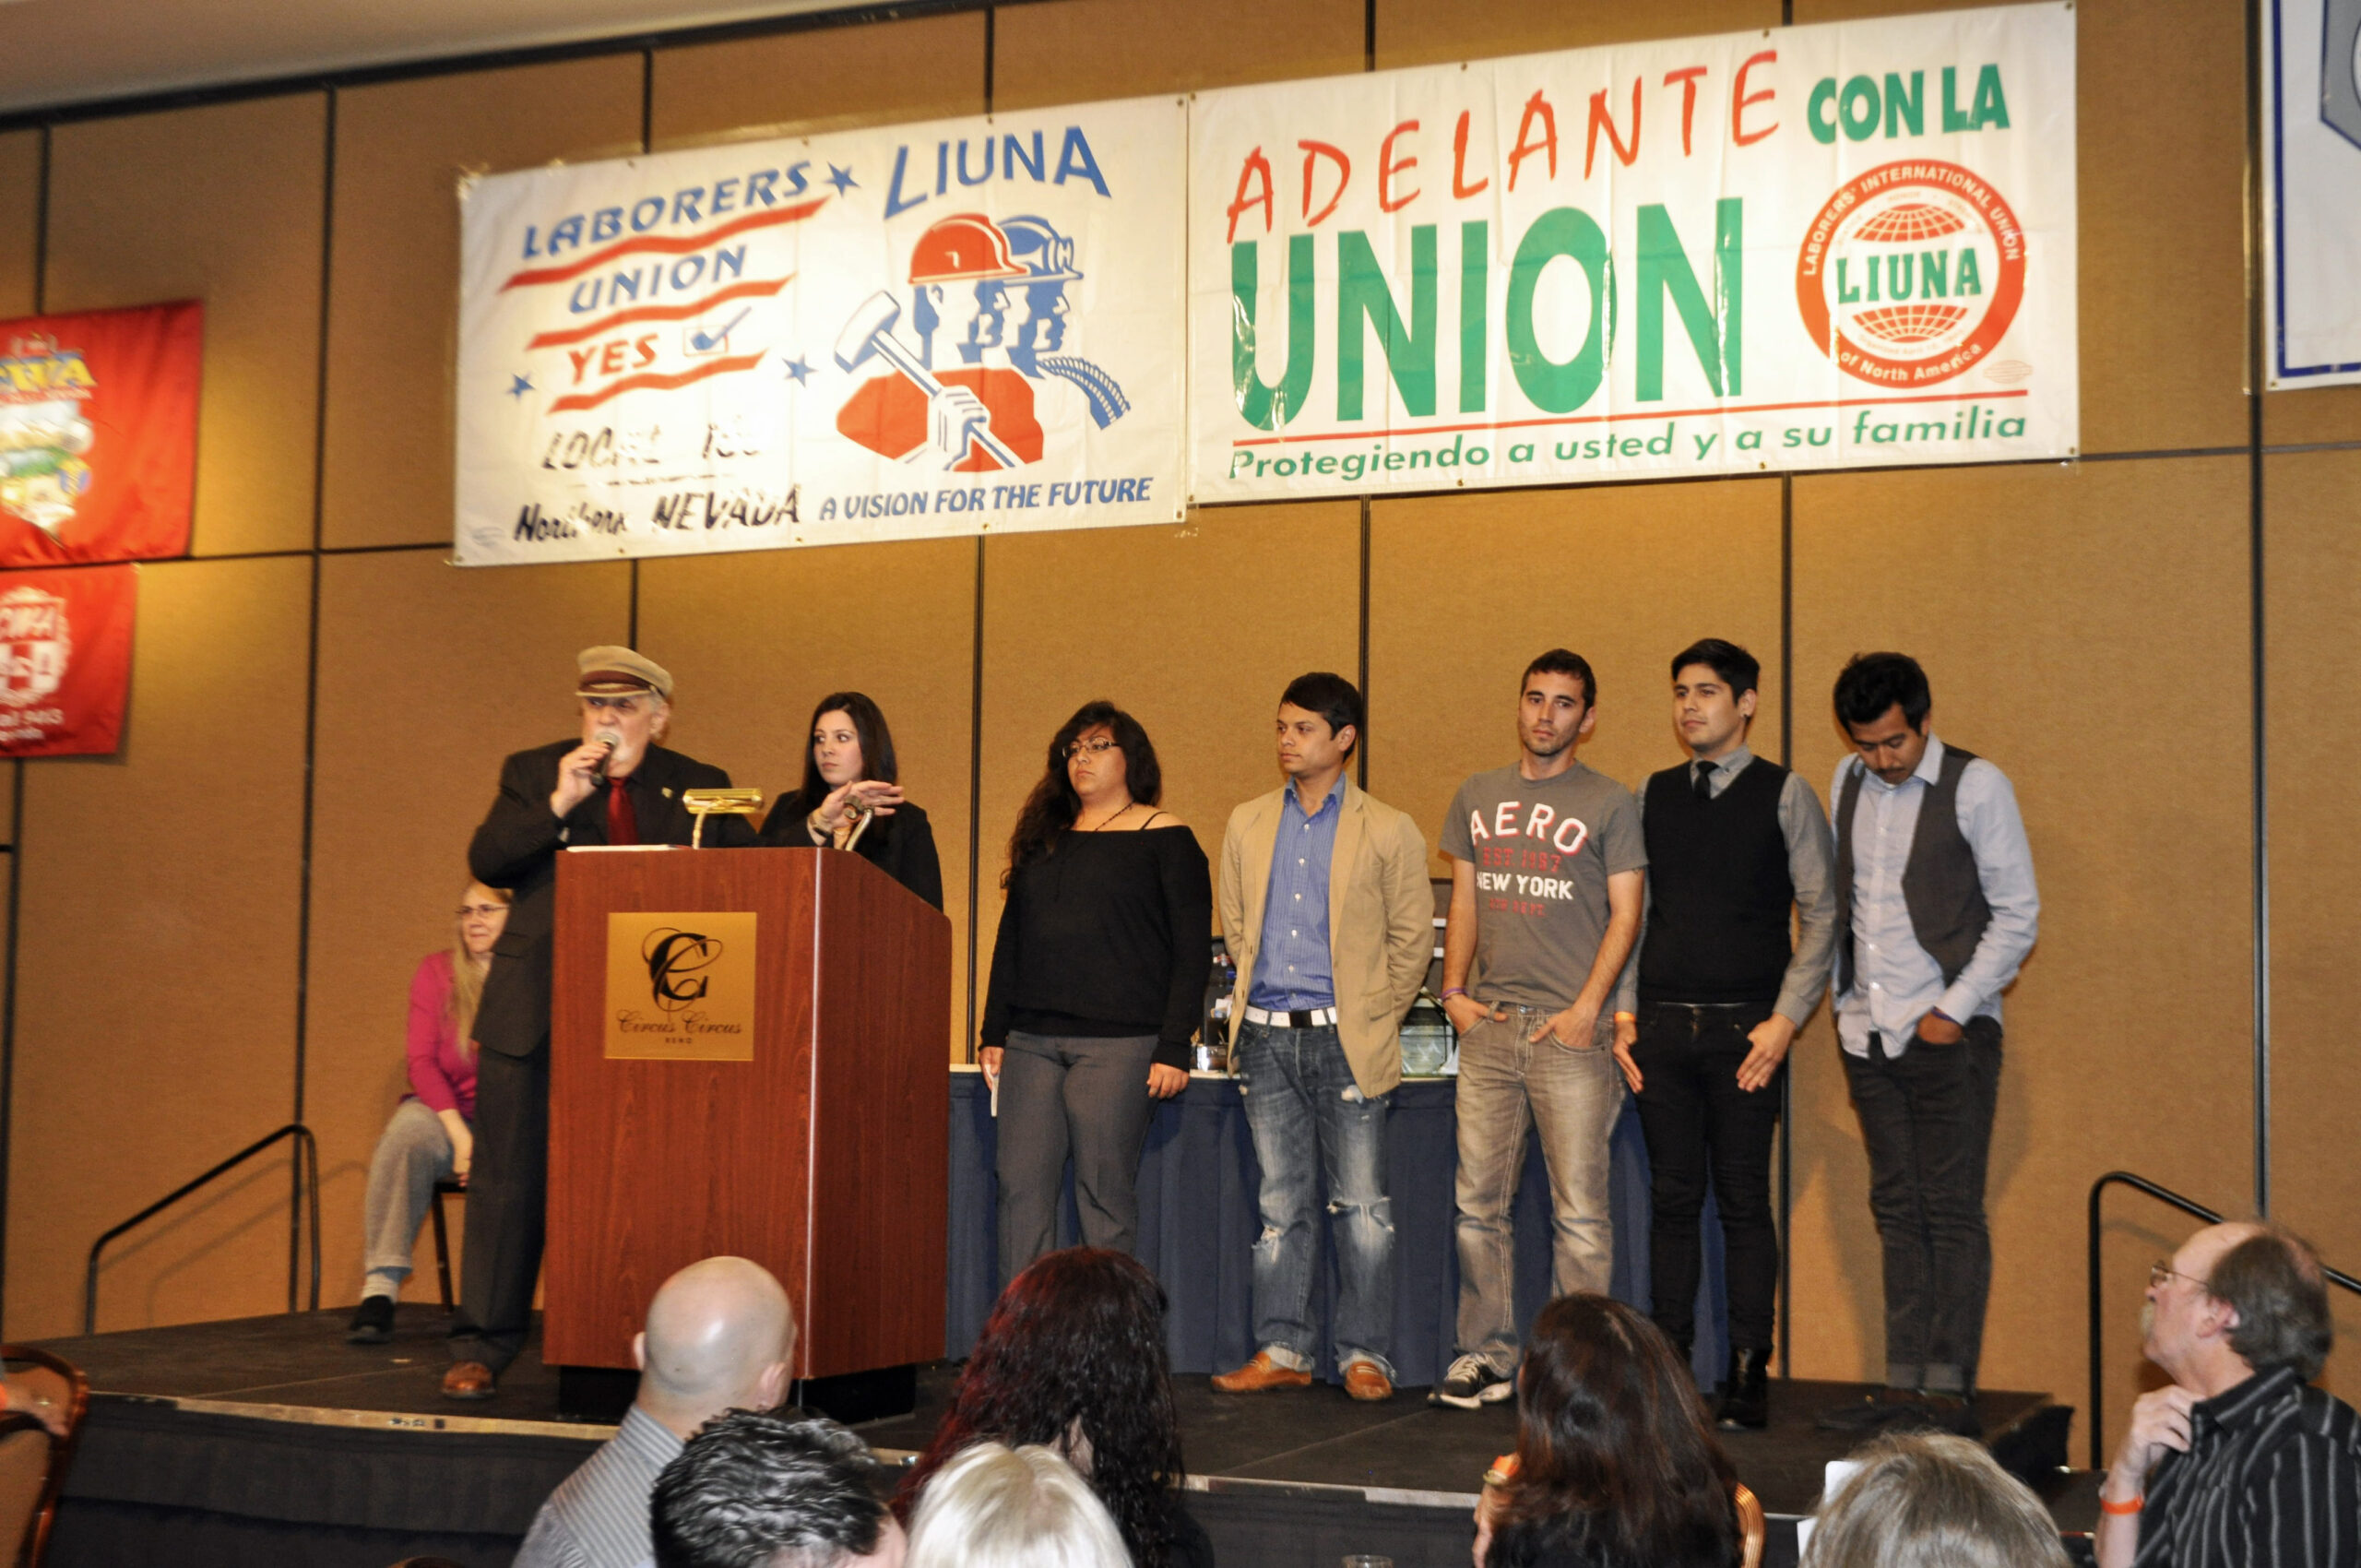 Students on stage with union banners behind them